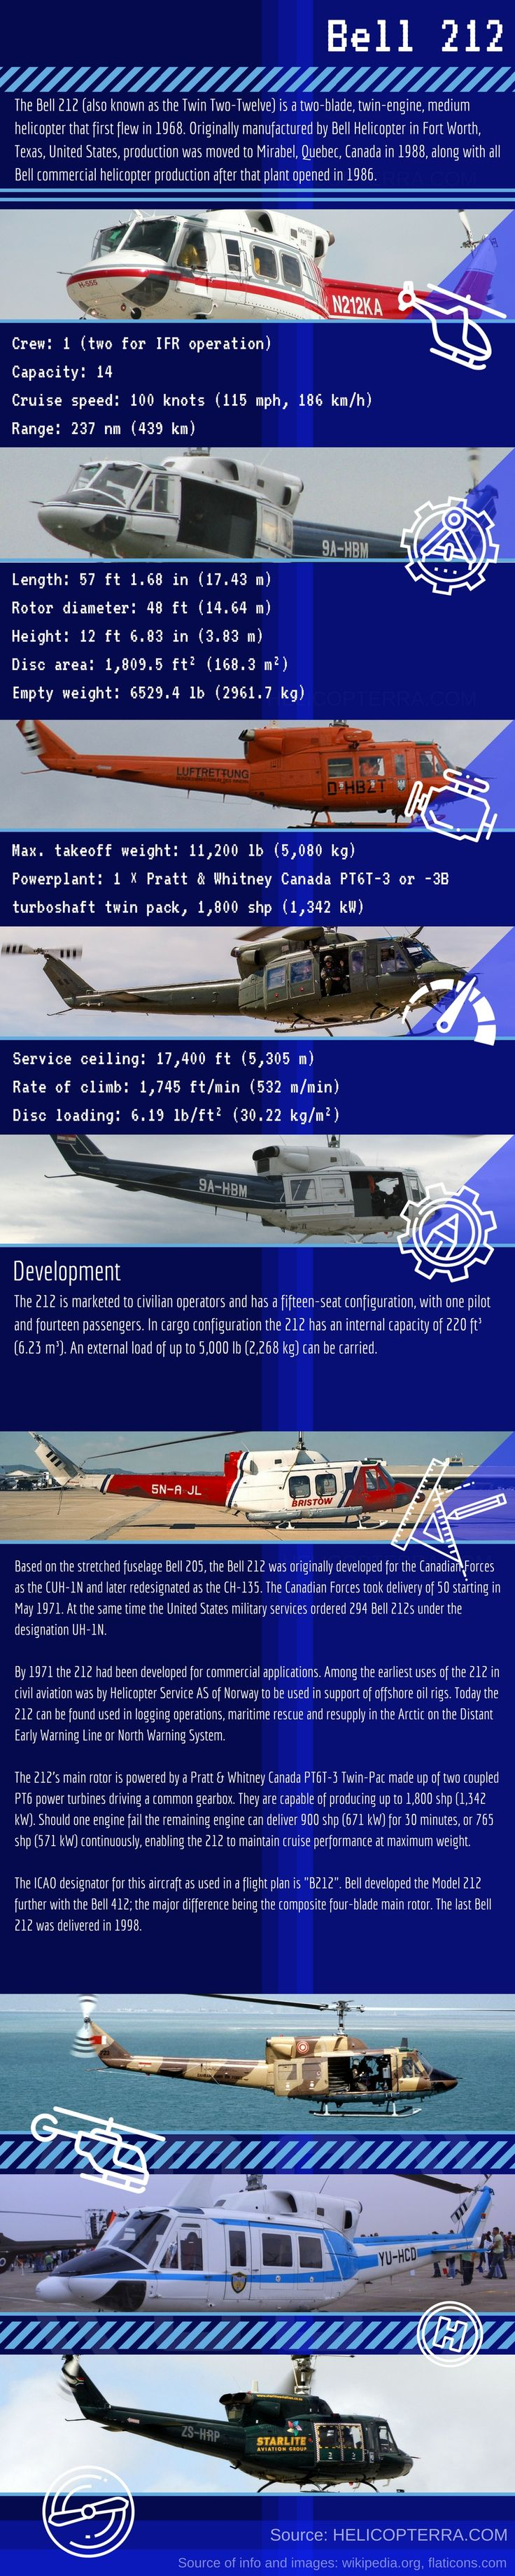 Bell 212 - helicopter, helicopterra.com